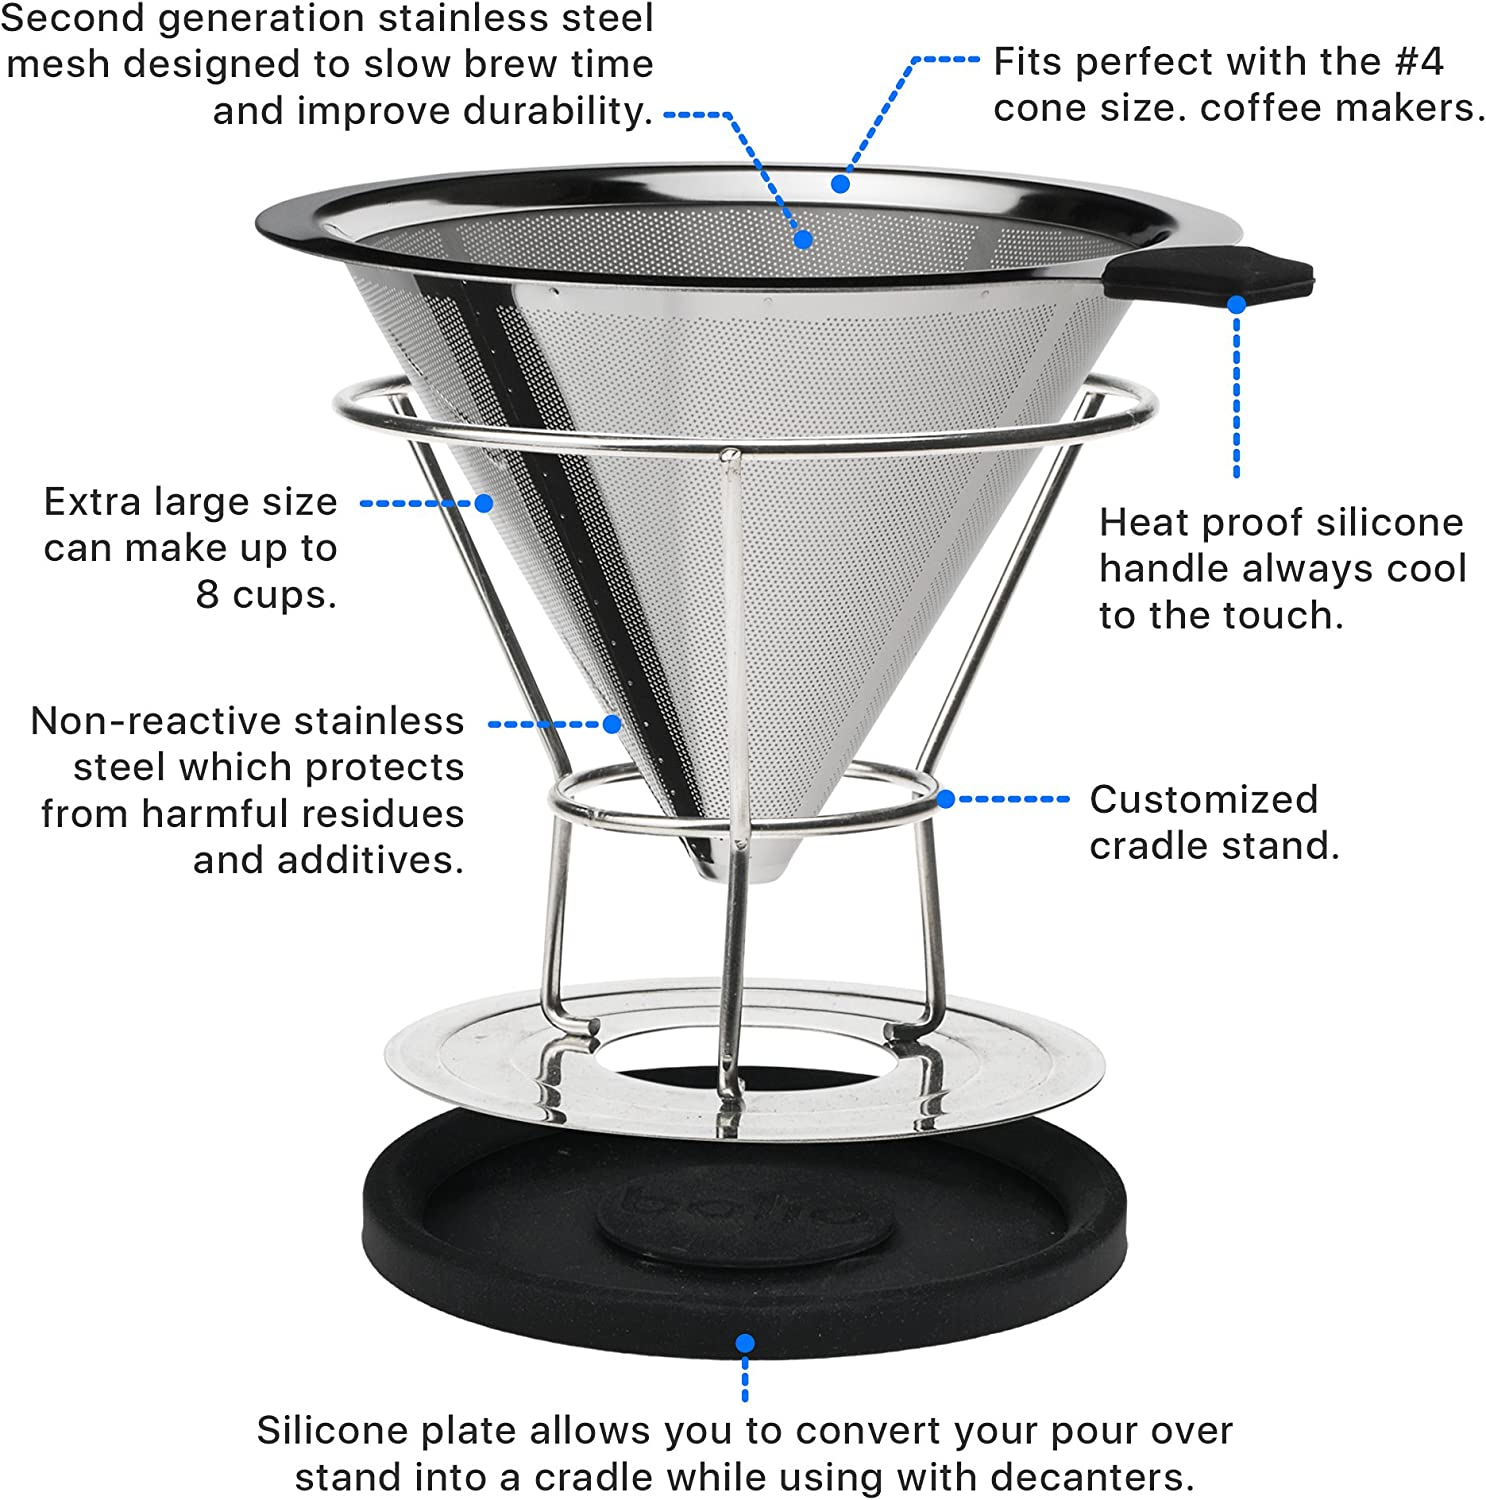 No 2 Size Fits Chemex V60 Pour Over Bolio Stainless Steel Coffee Filter Bodum and most 10 Cup Coffee Makers